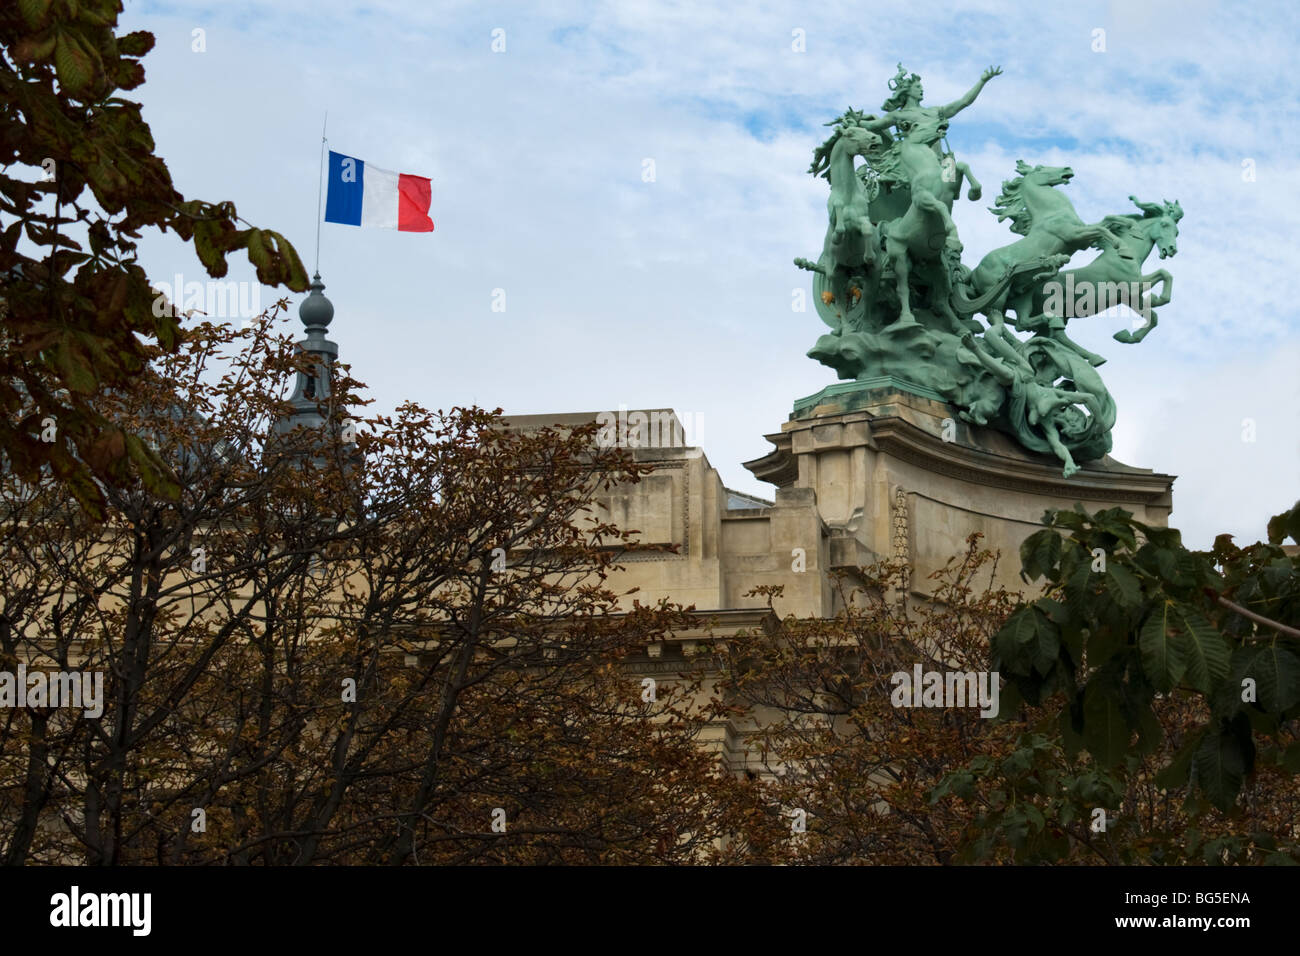 French flag and sculpture on the roof of Salon des Artistes Independants, Paris, France. - Stock Image